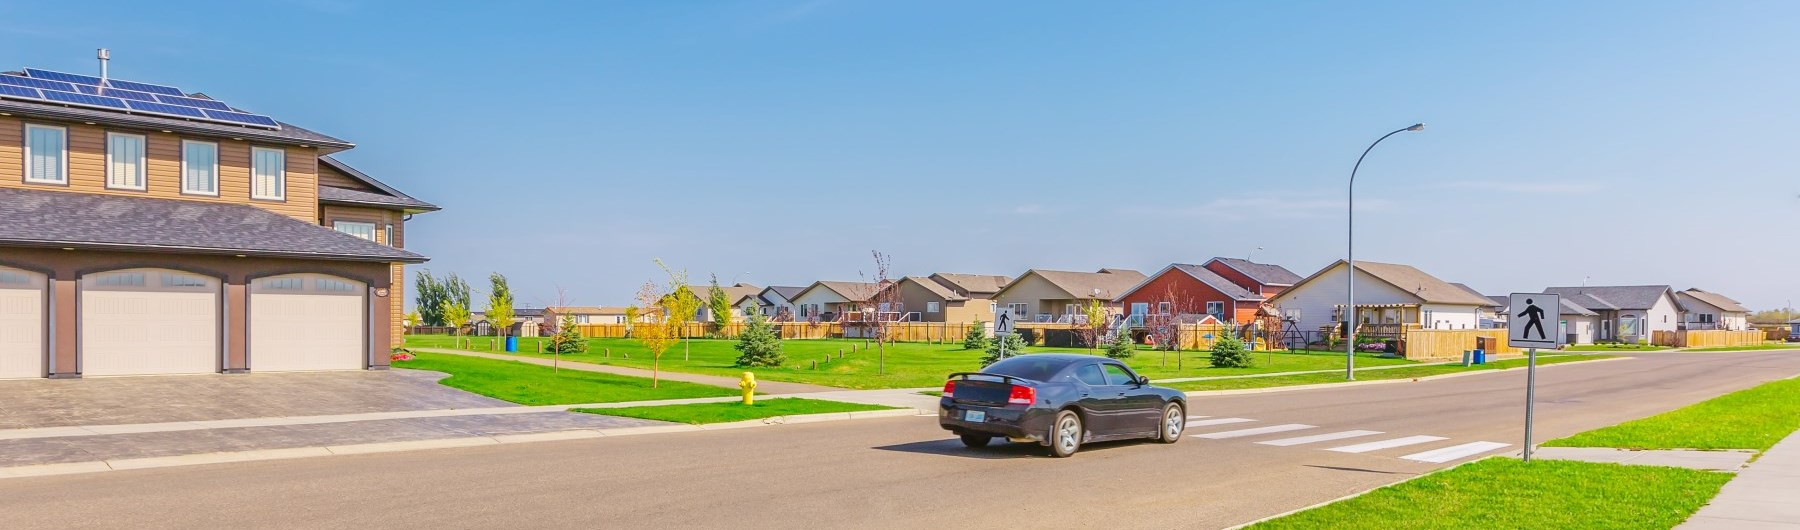 Neighbourhood in Lloydminster